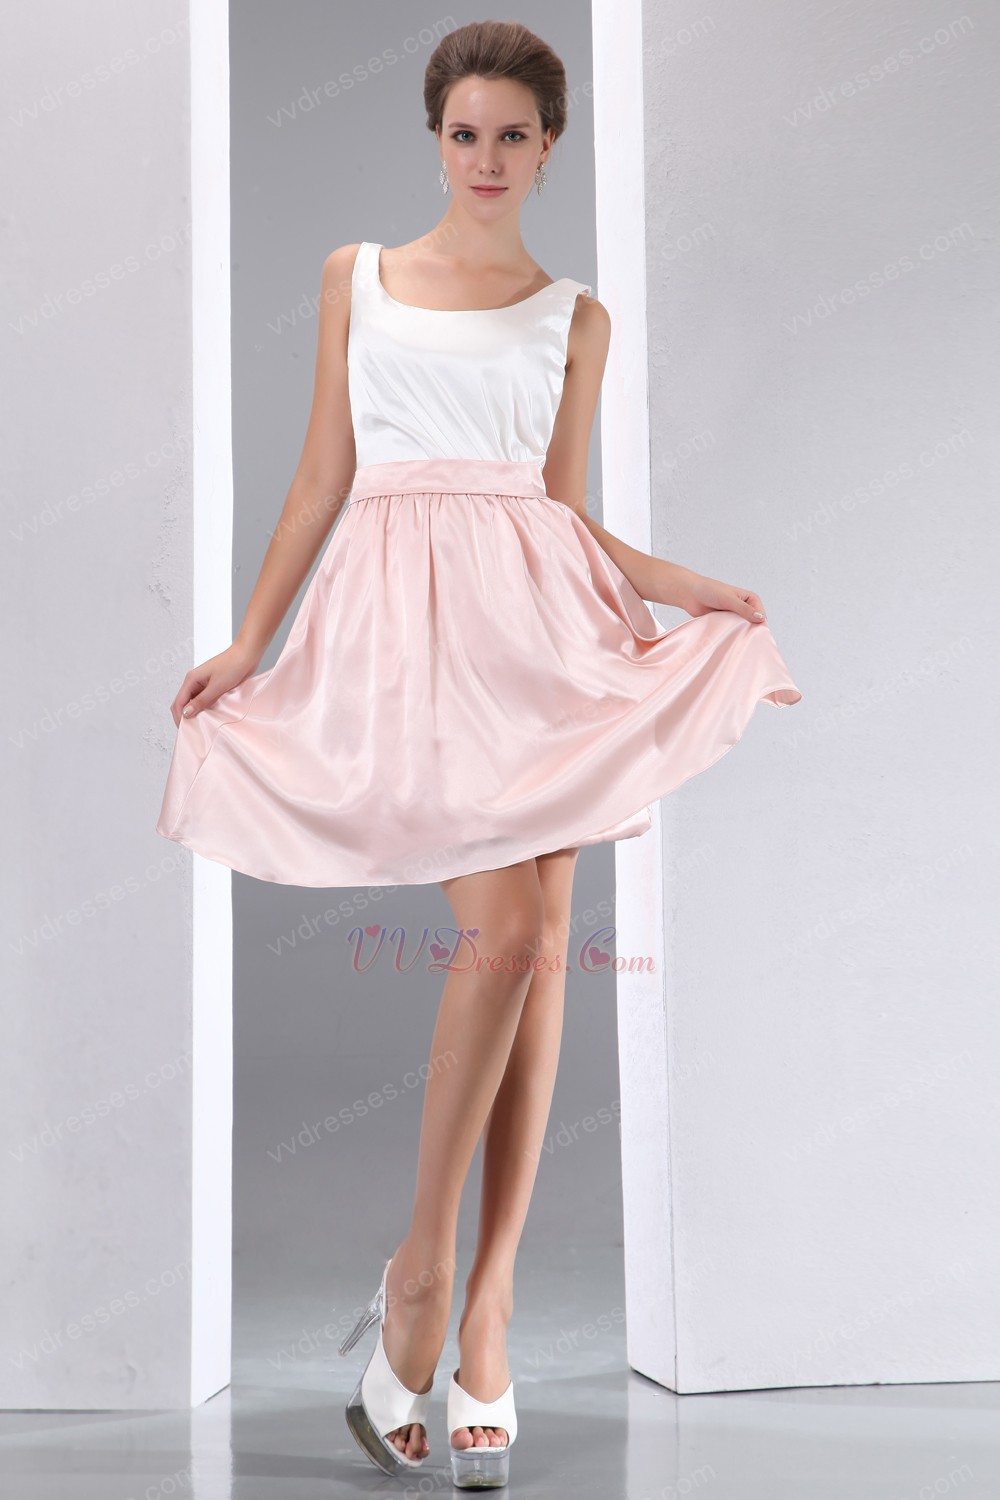 terse square white and pink high school graduation dress